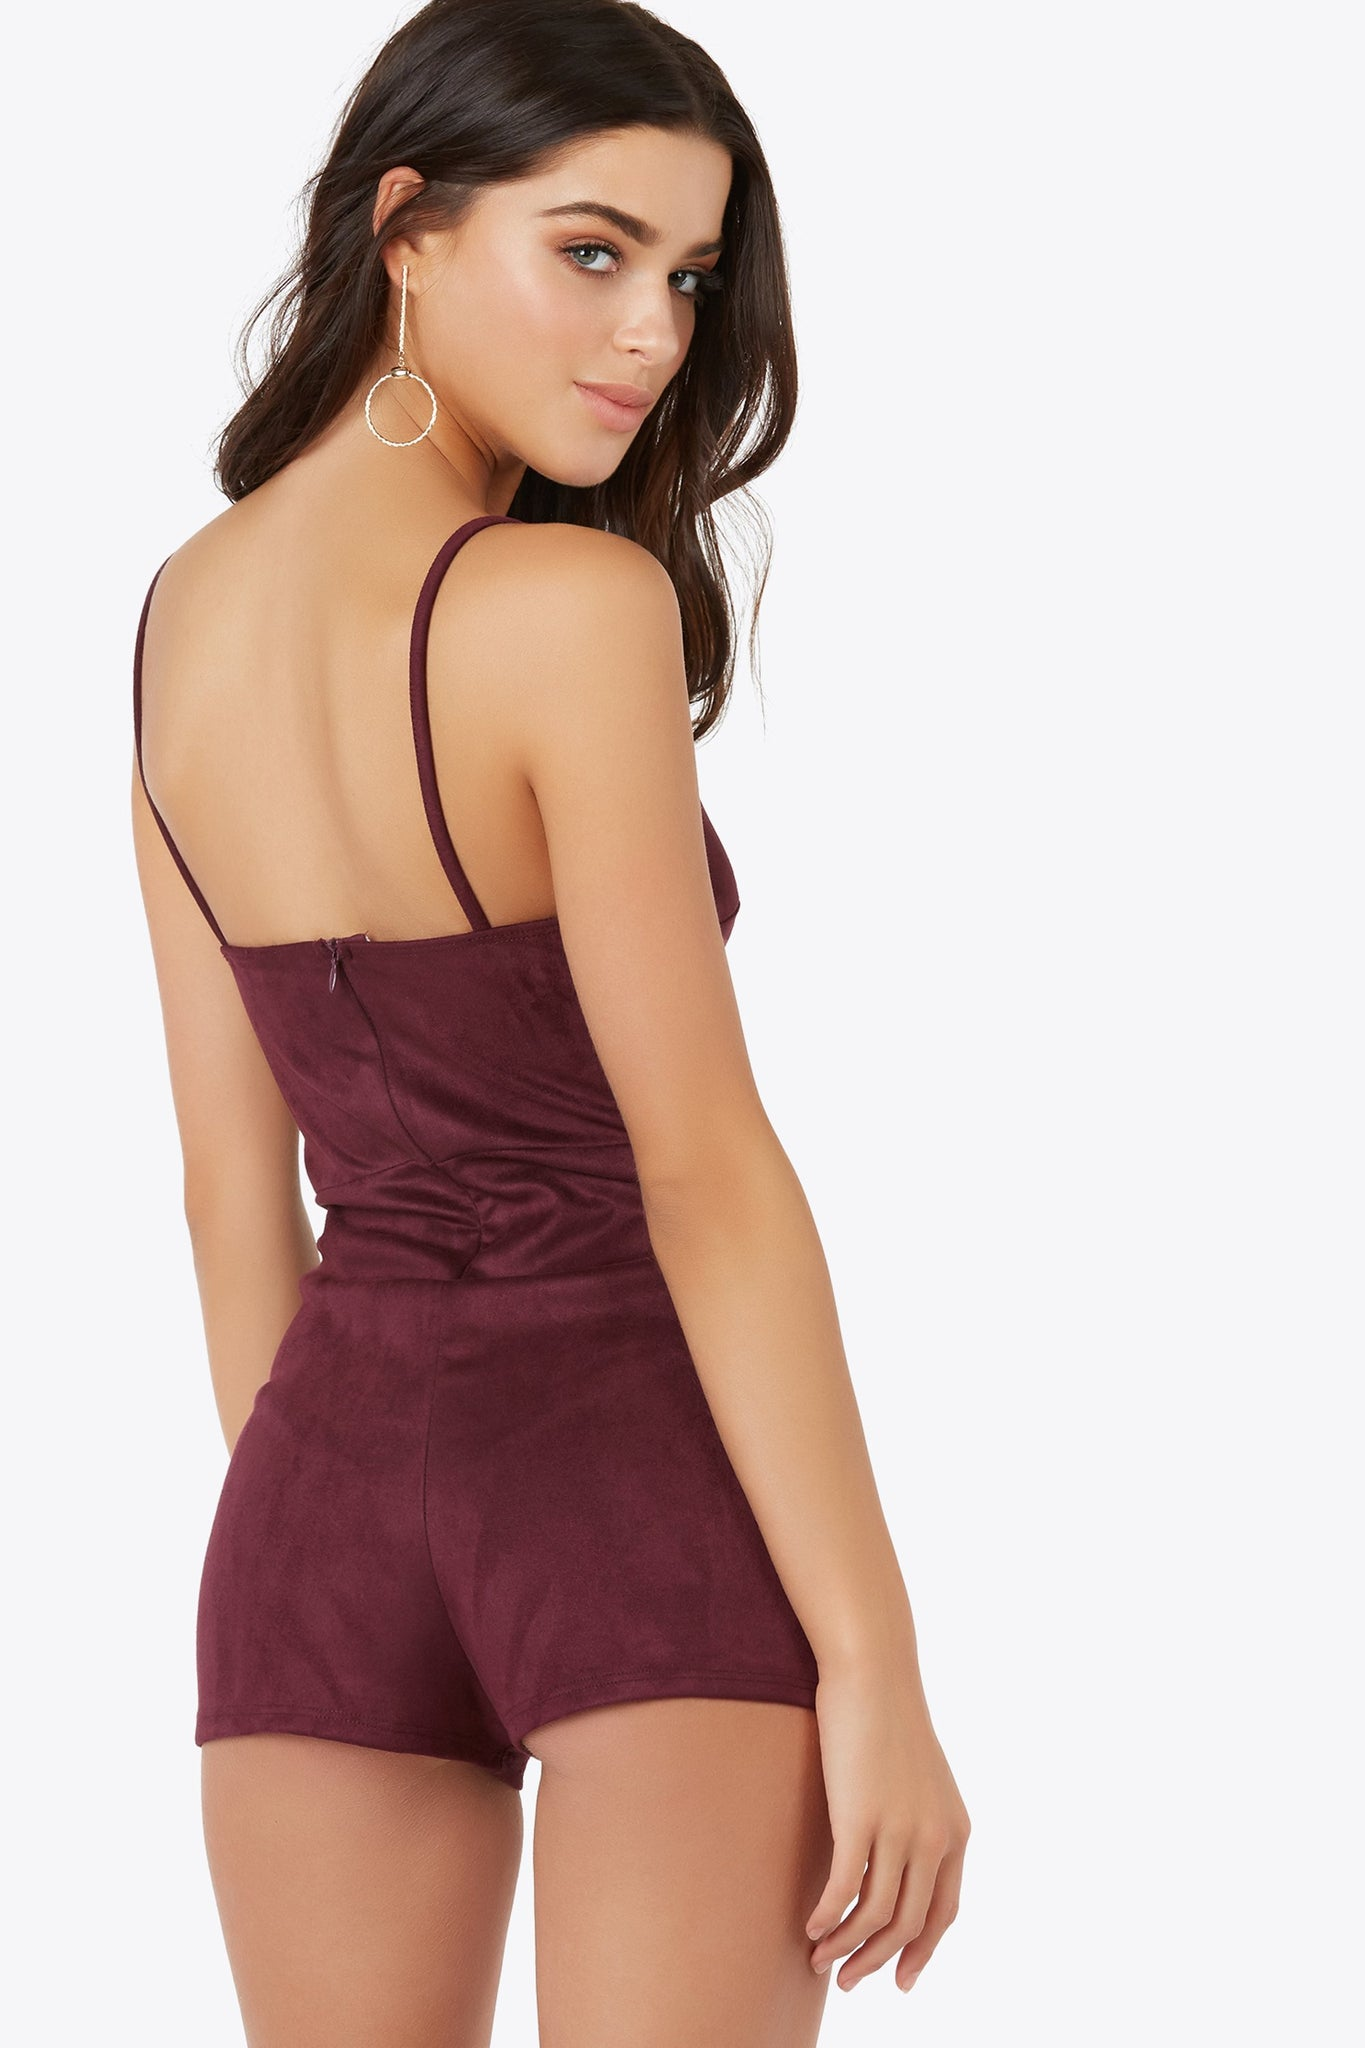 Live up the day or night in the suede-like romper with shoulder straps. Features scallop detailing on bodice and a back hidden zipper closure.